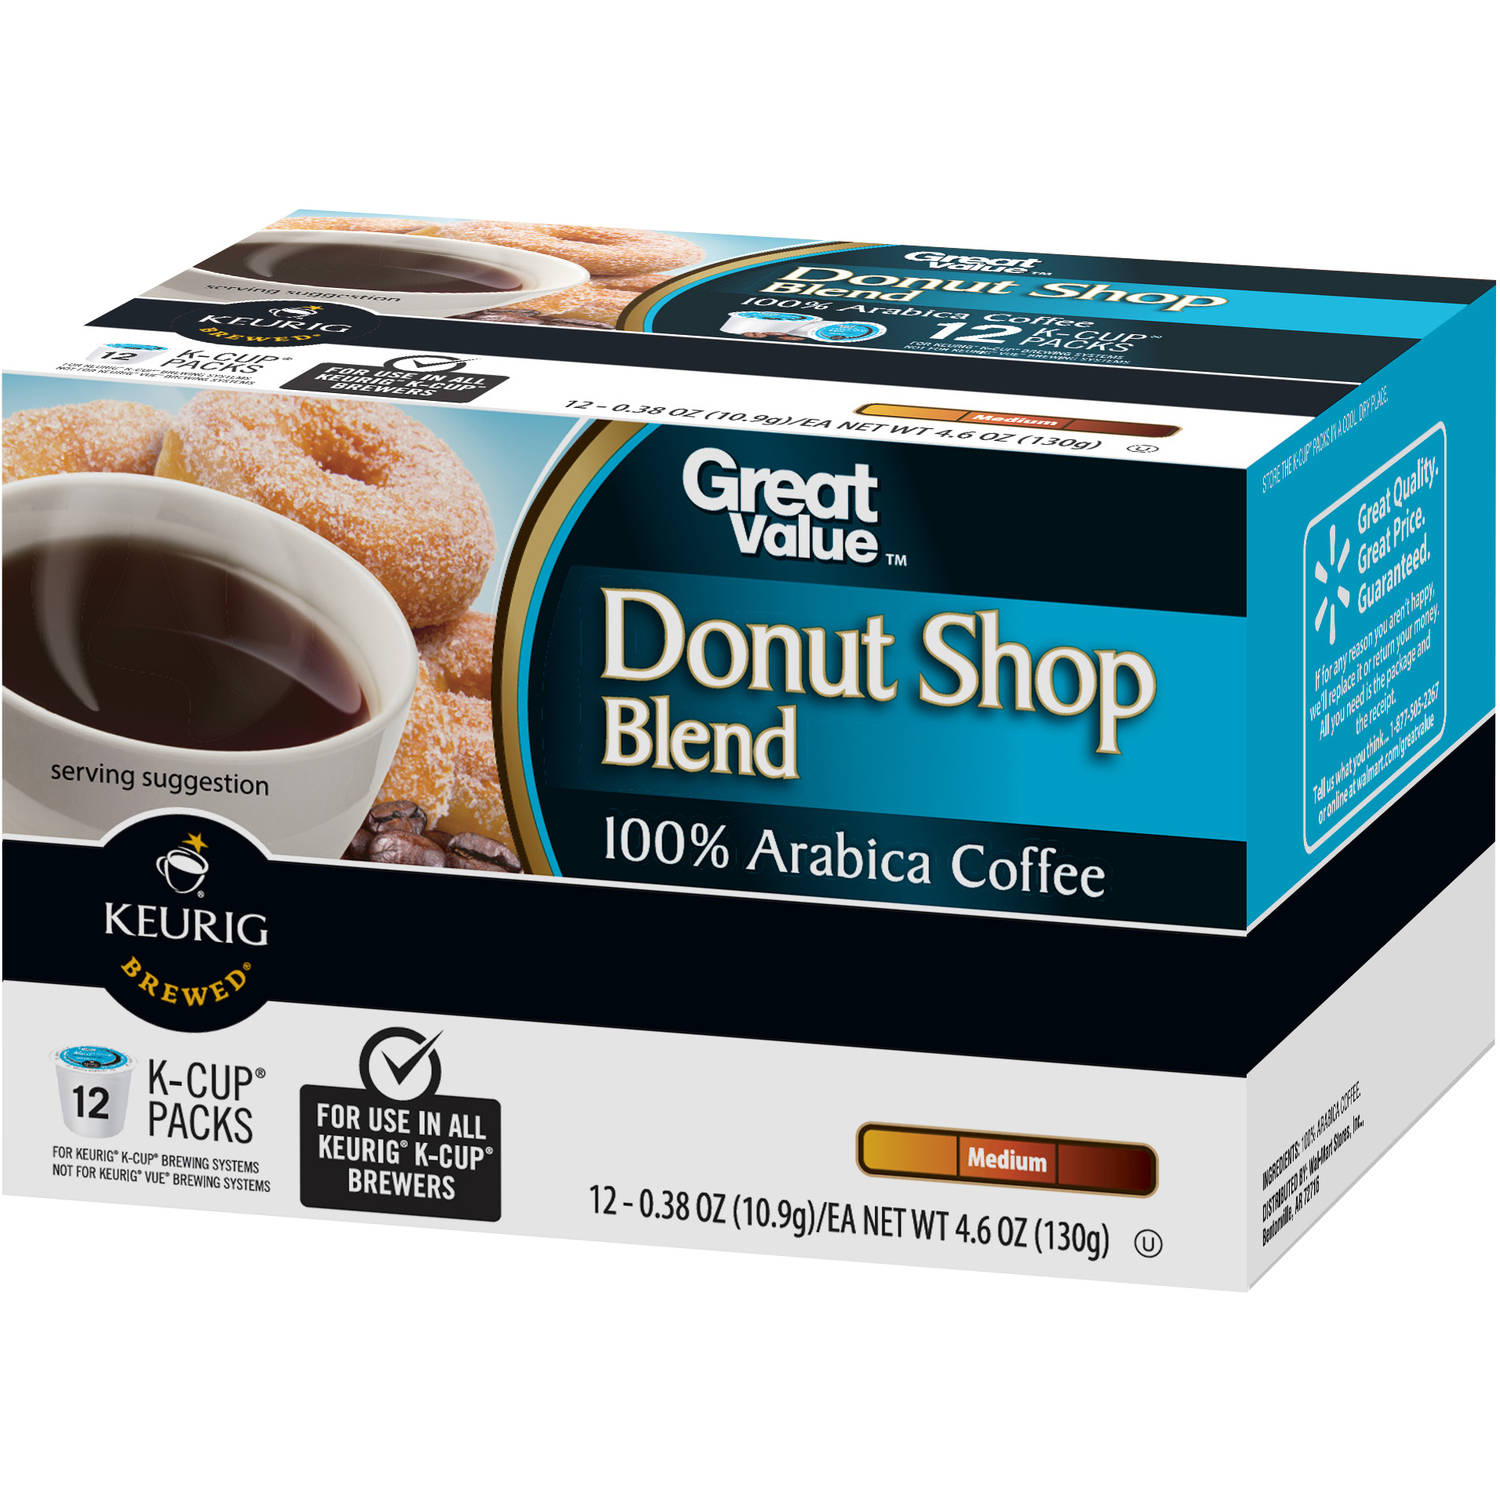 Great Value Donut Shop Blend Medium Roast Coffee K-Cup Packs, 0.38 oz, 12 count